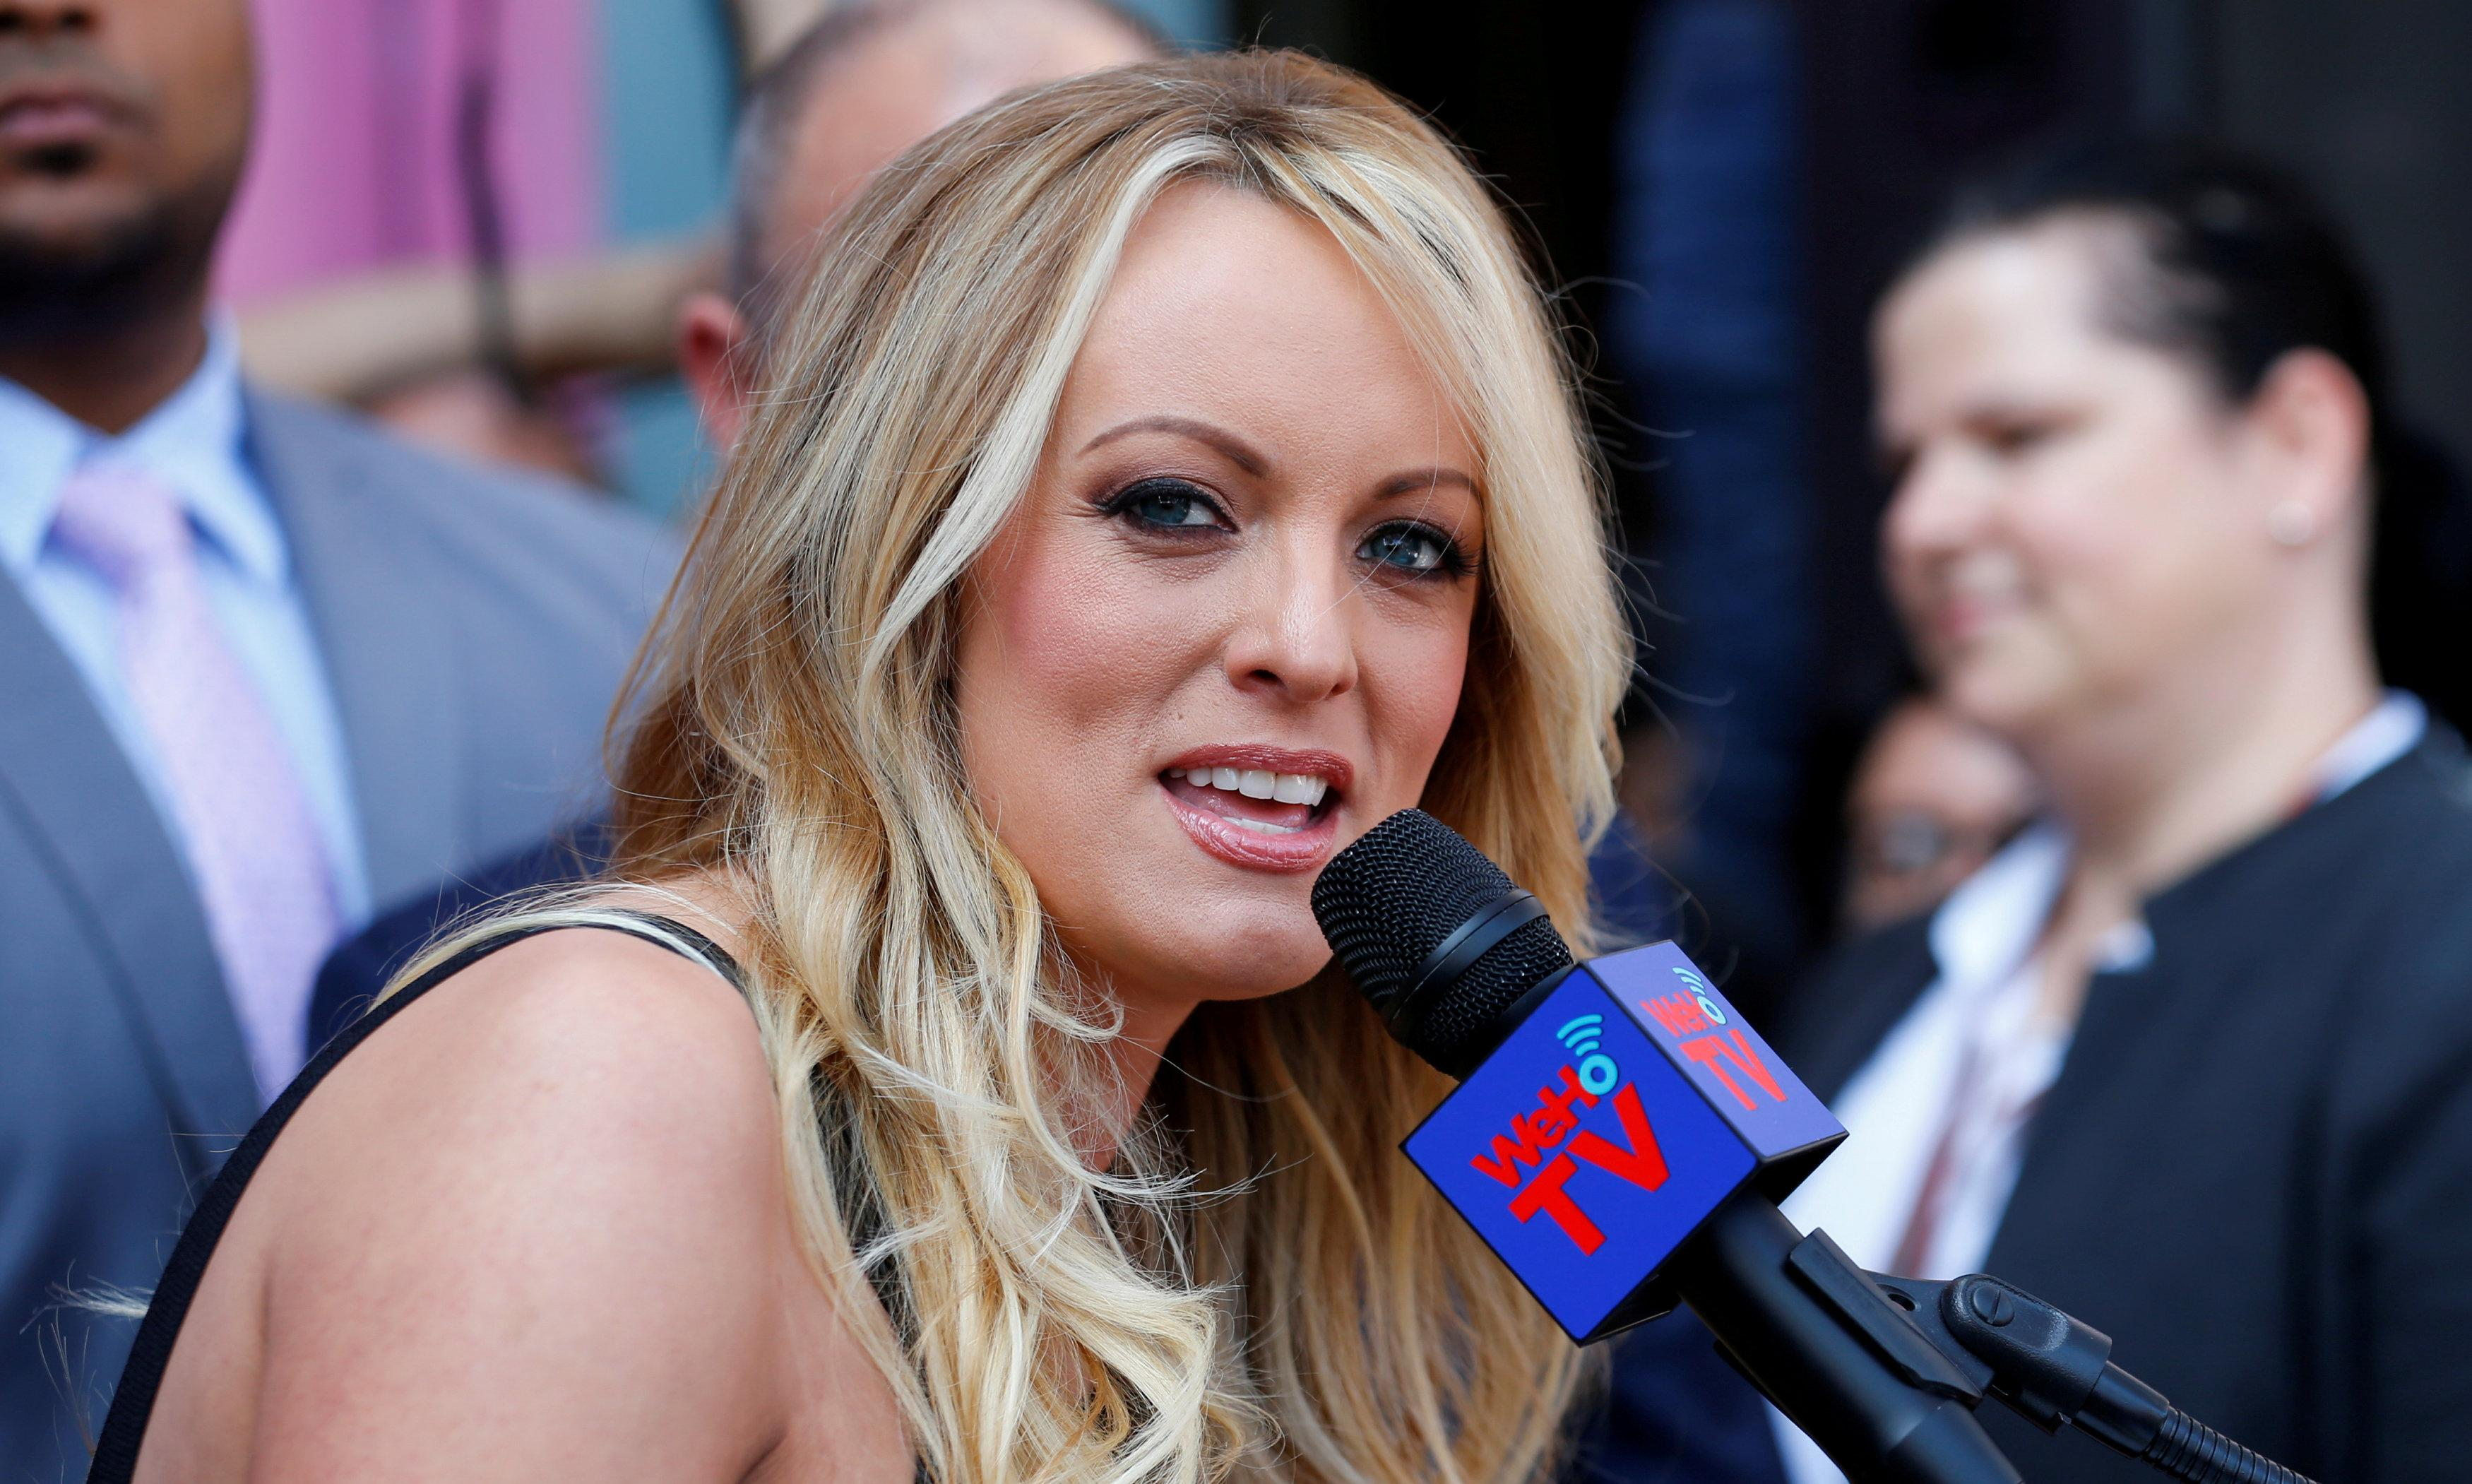 Stormy Daniels ordered to pay Trump nearly $300,000 in legal fees